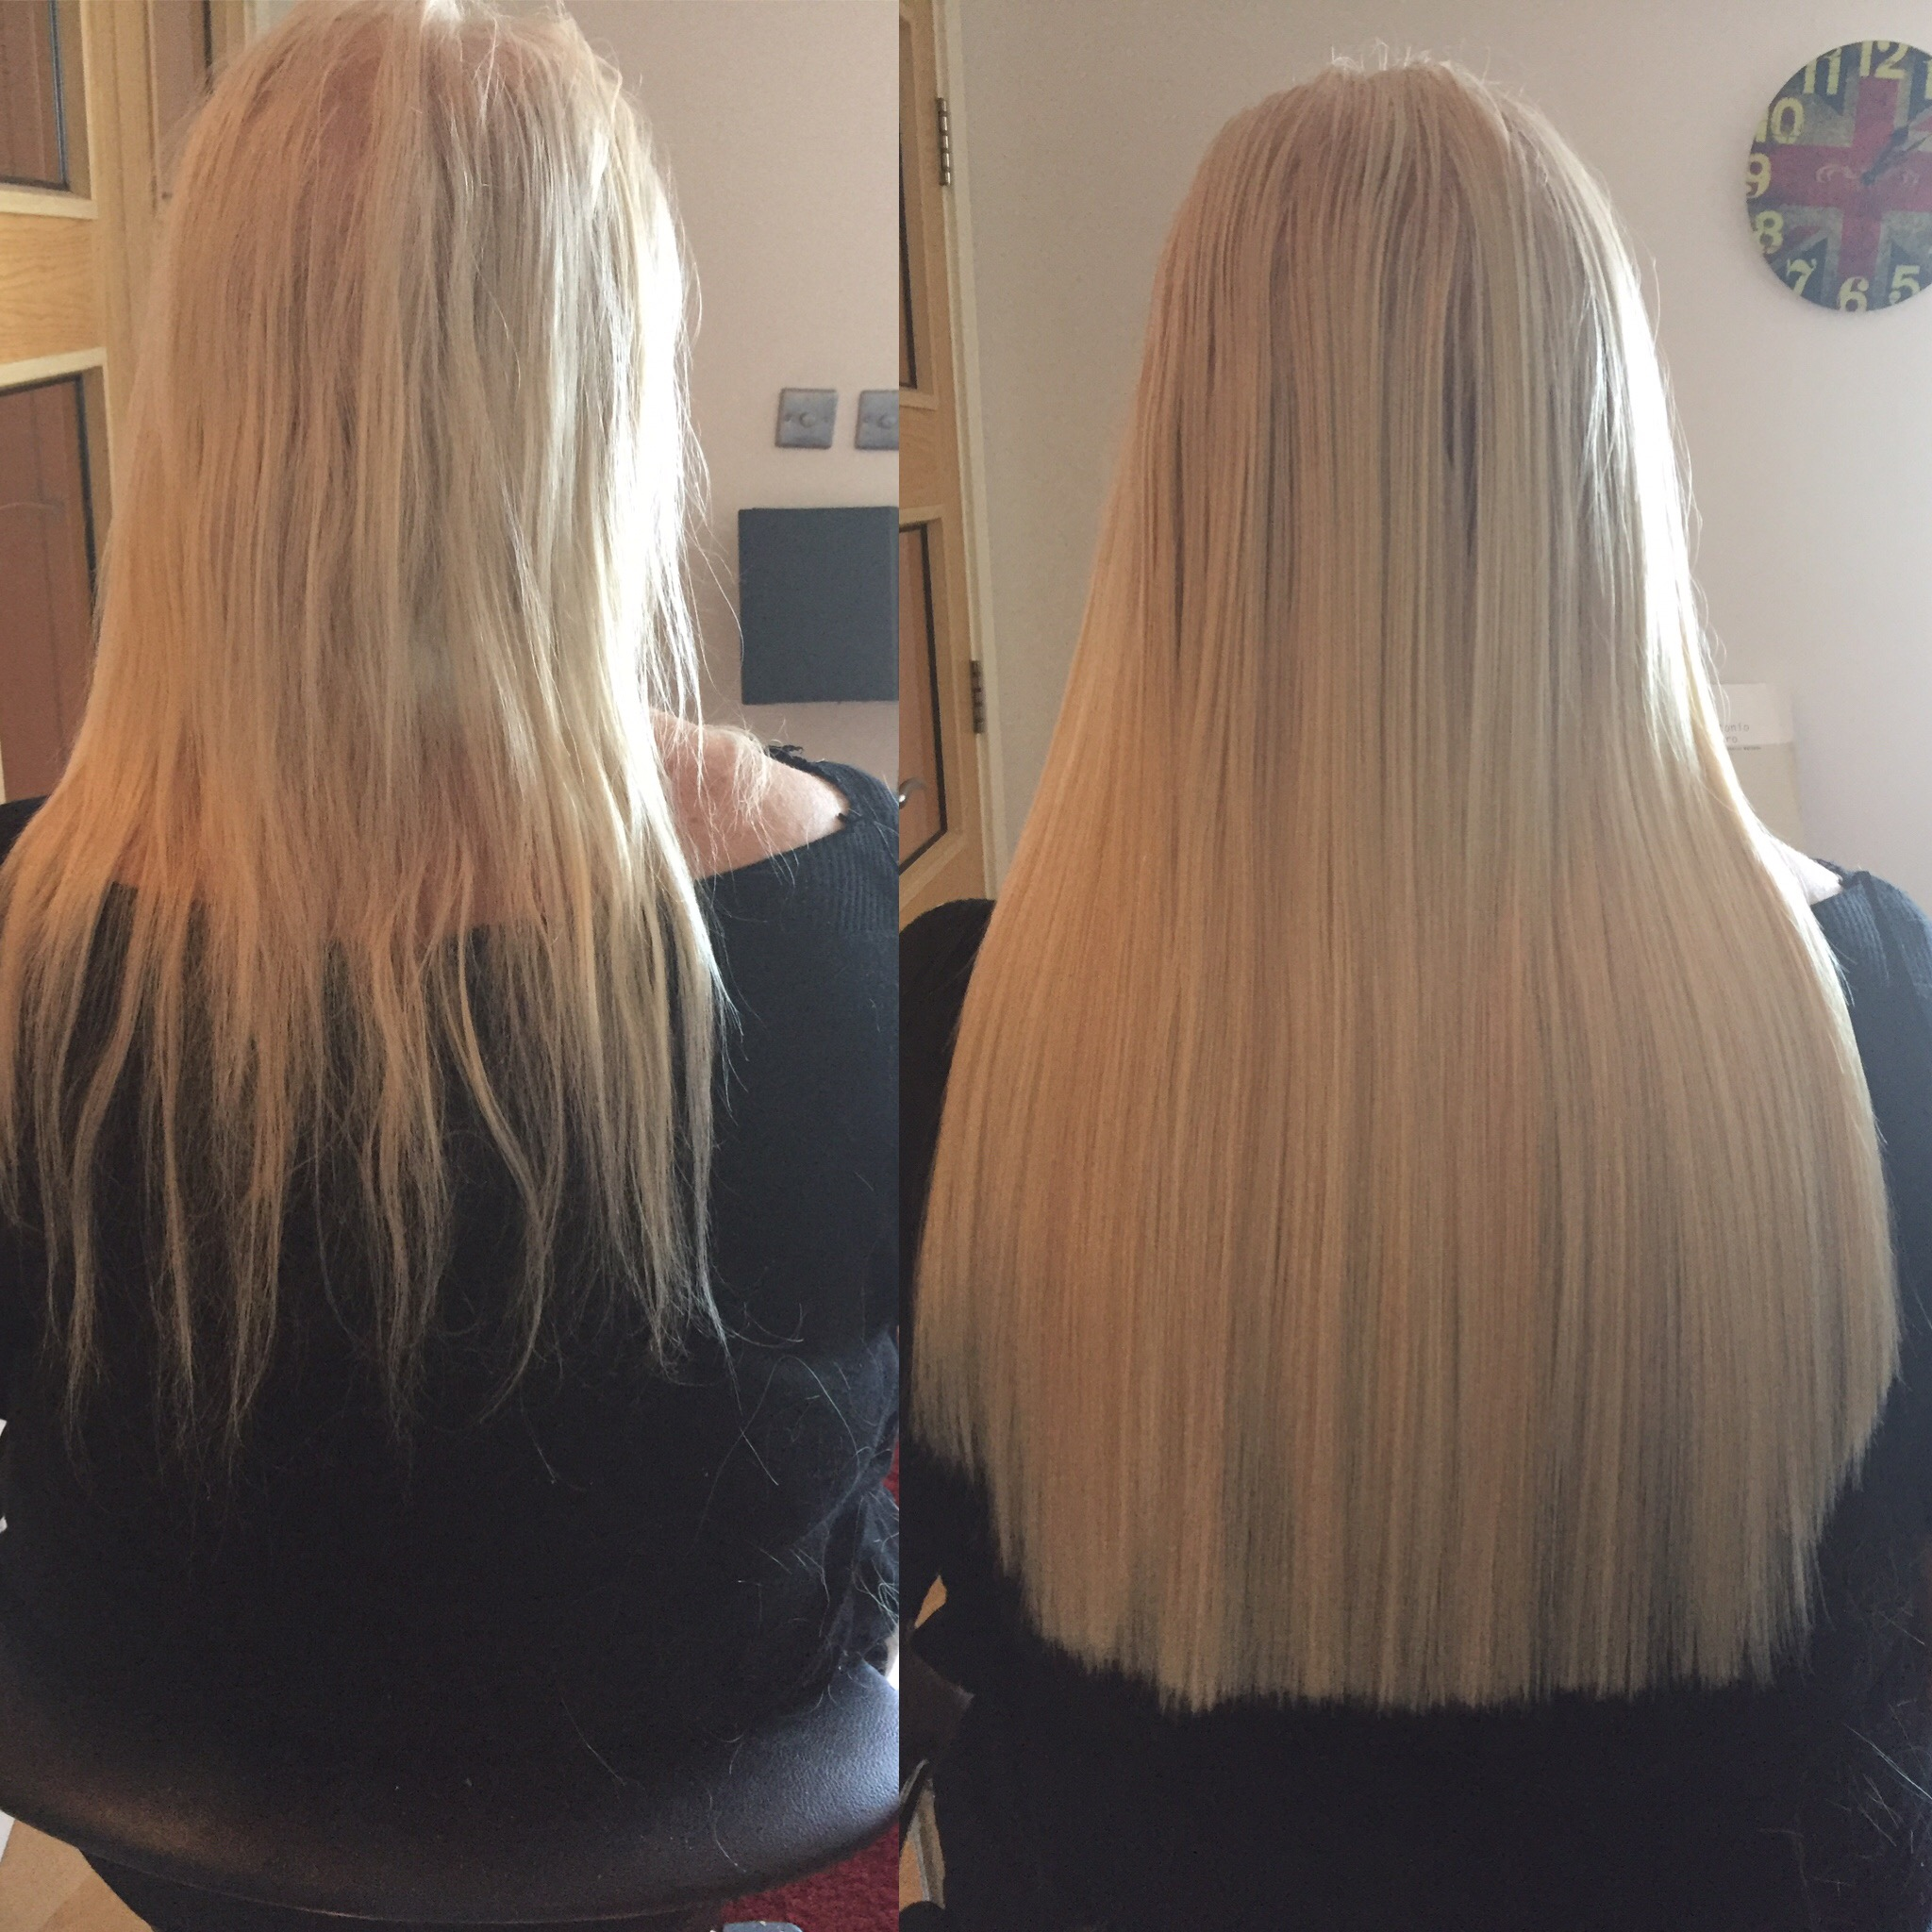 before and after picture tape hair extensions